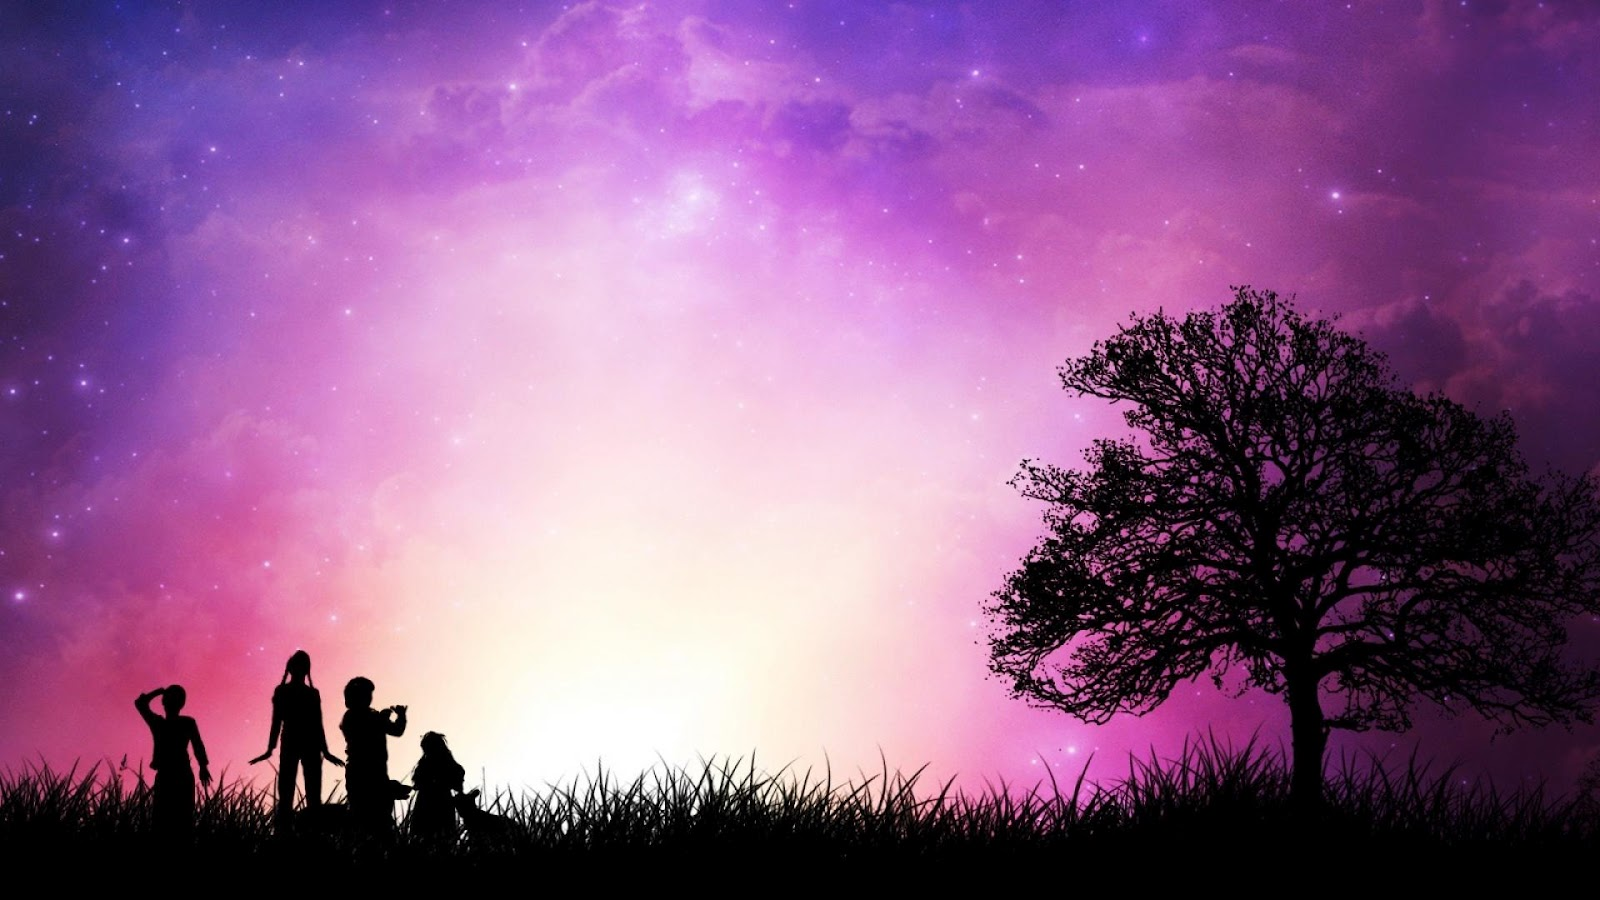 Wallpaper Love Violet : Romantic Wallpapers HD Pictures HD Wallpapers ,Backgrounds ,Photos ,Pictures, Image ,Pc